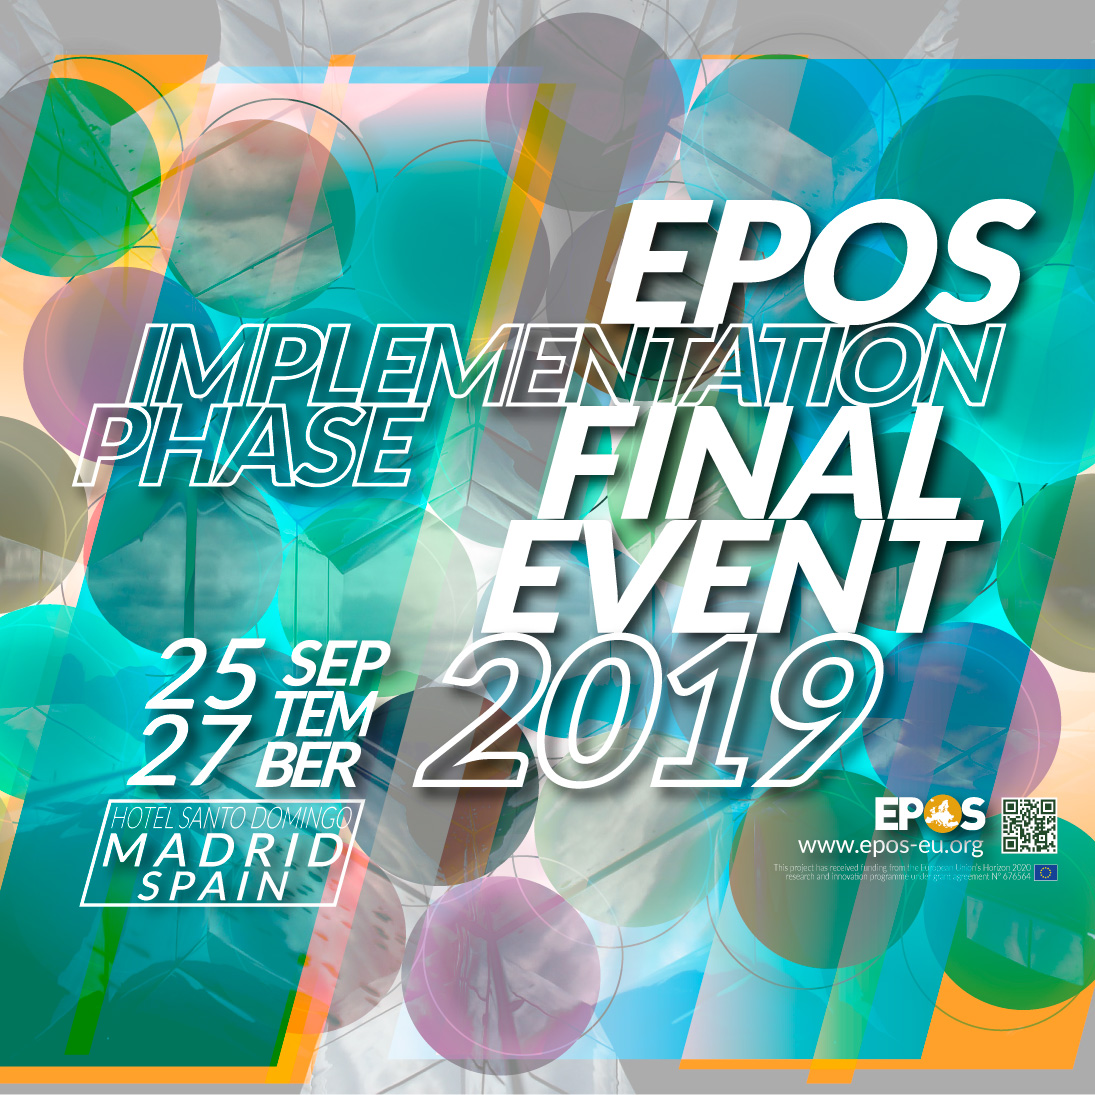 Epos IP Final Event